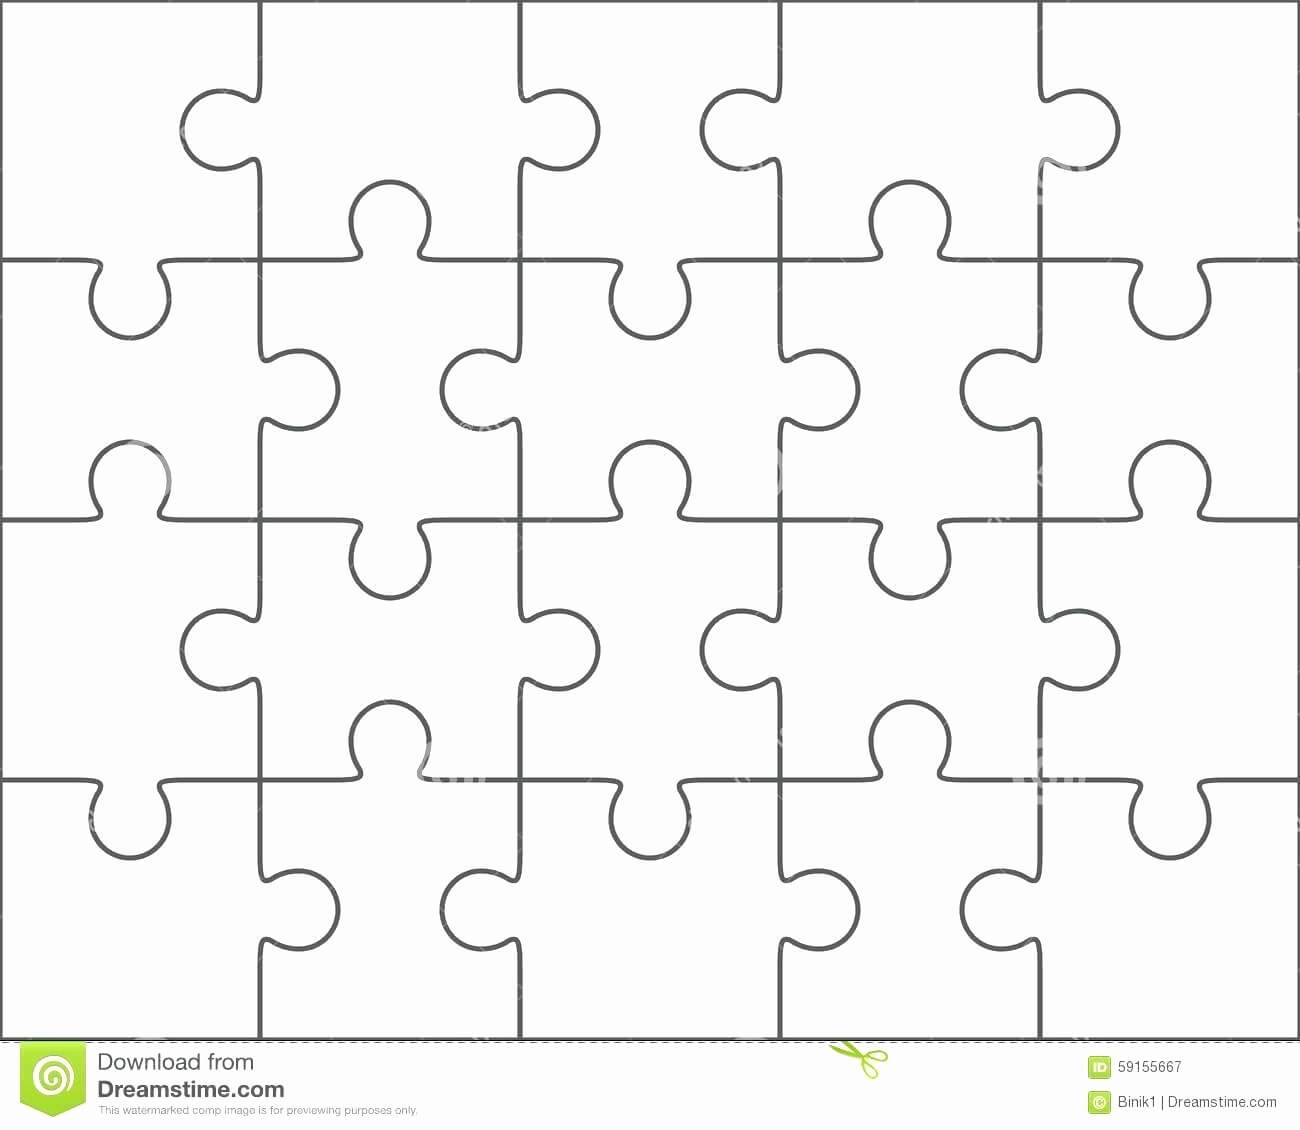 030 Puzzle Pieces Template For Word Best Of Piece Intended For Jigsaw Puzzle Template For Word